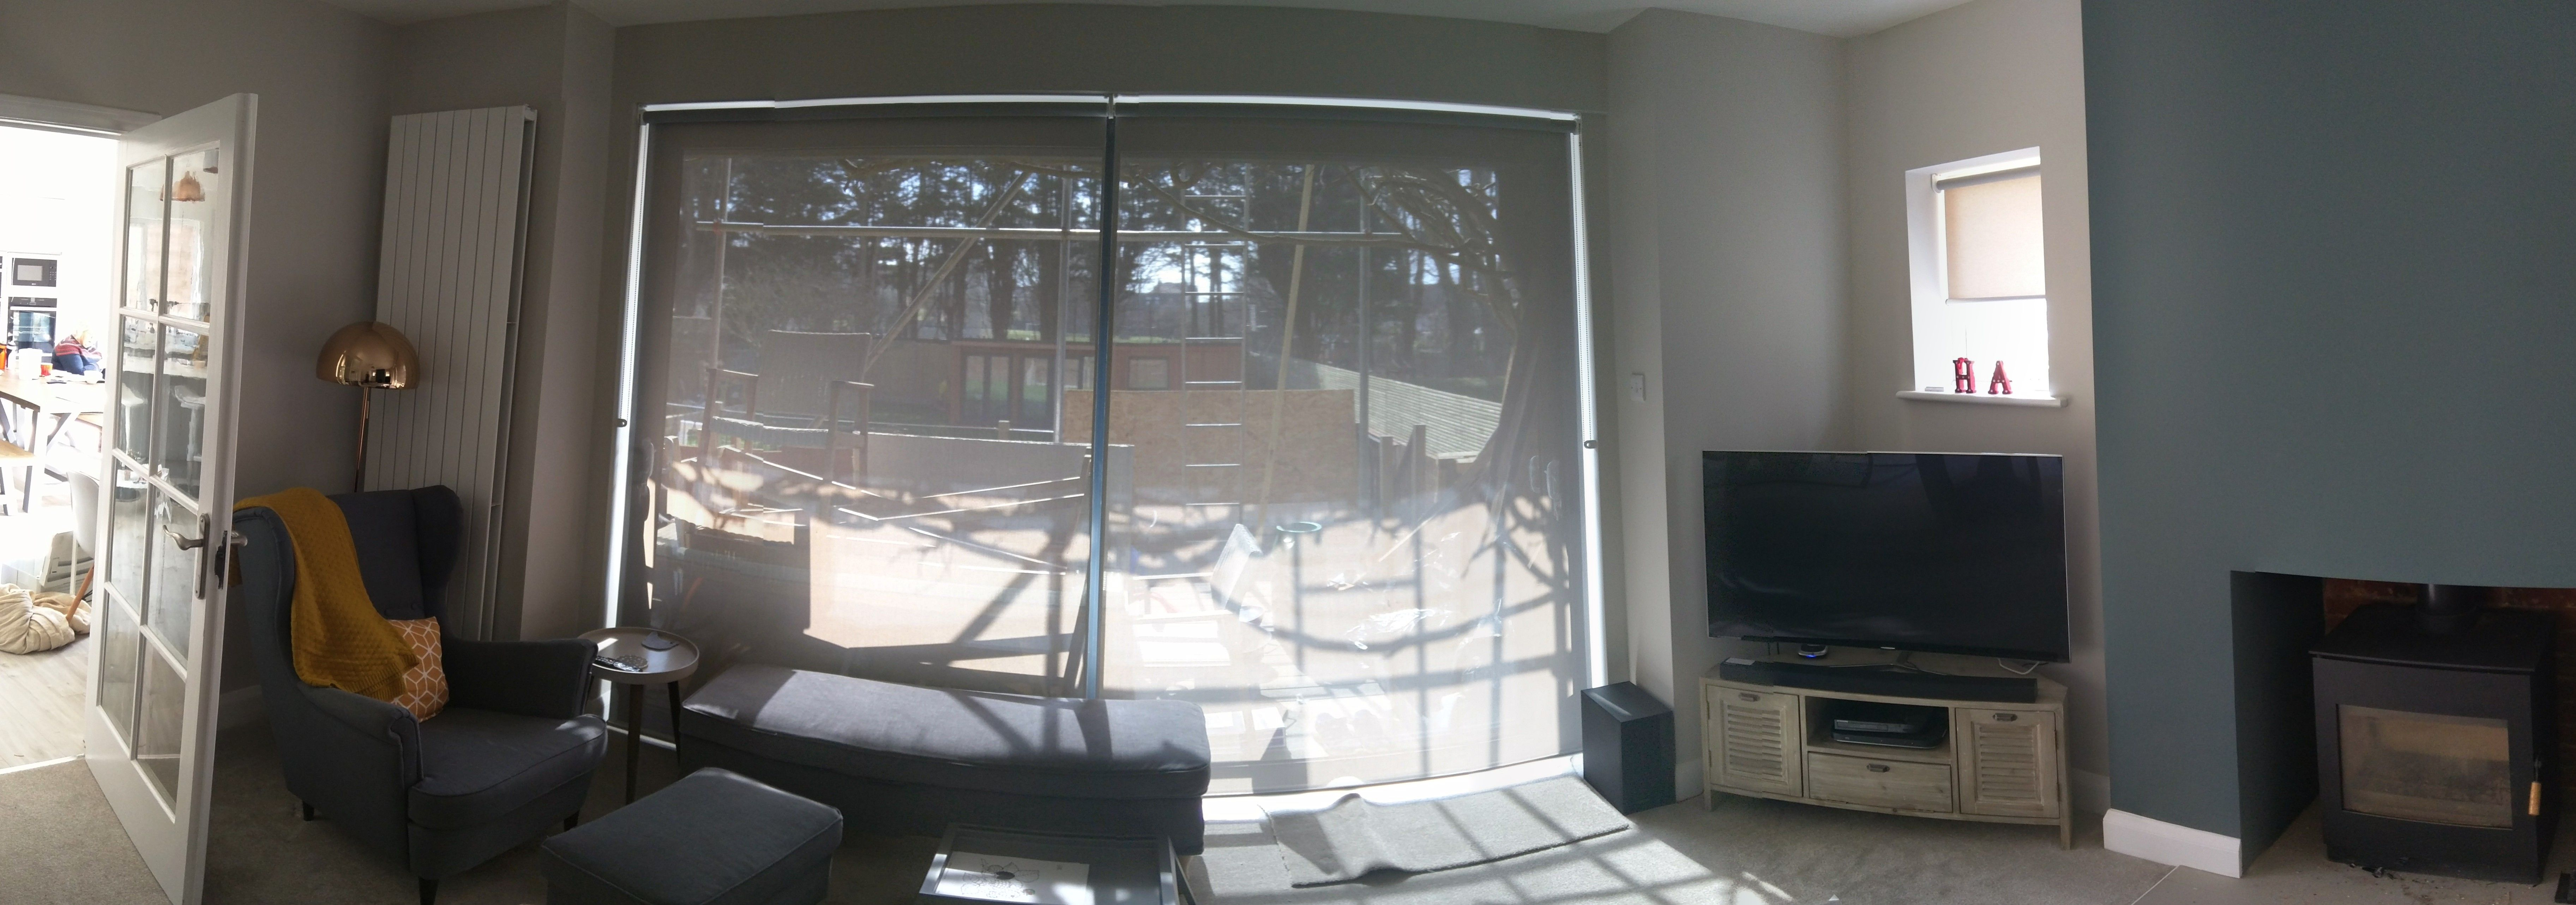 Sunscreen roller blinds we fitted to sliding doors in living room in